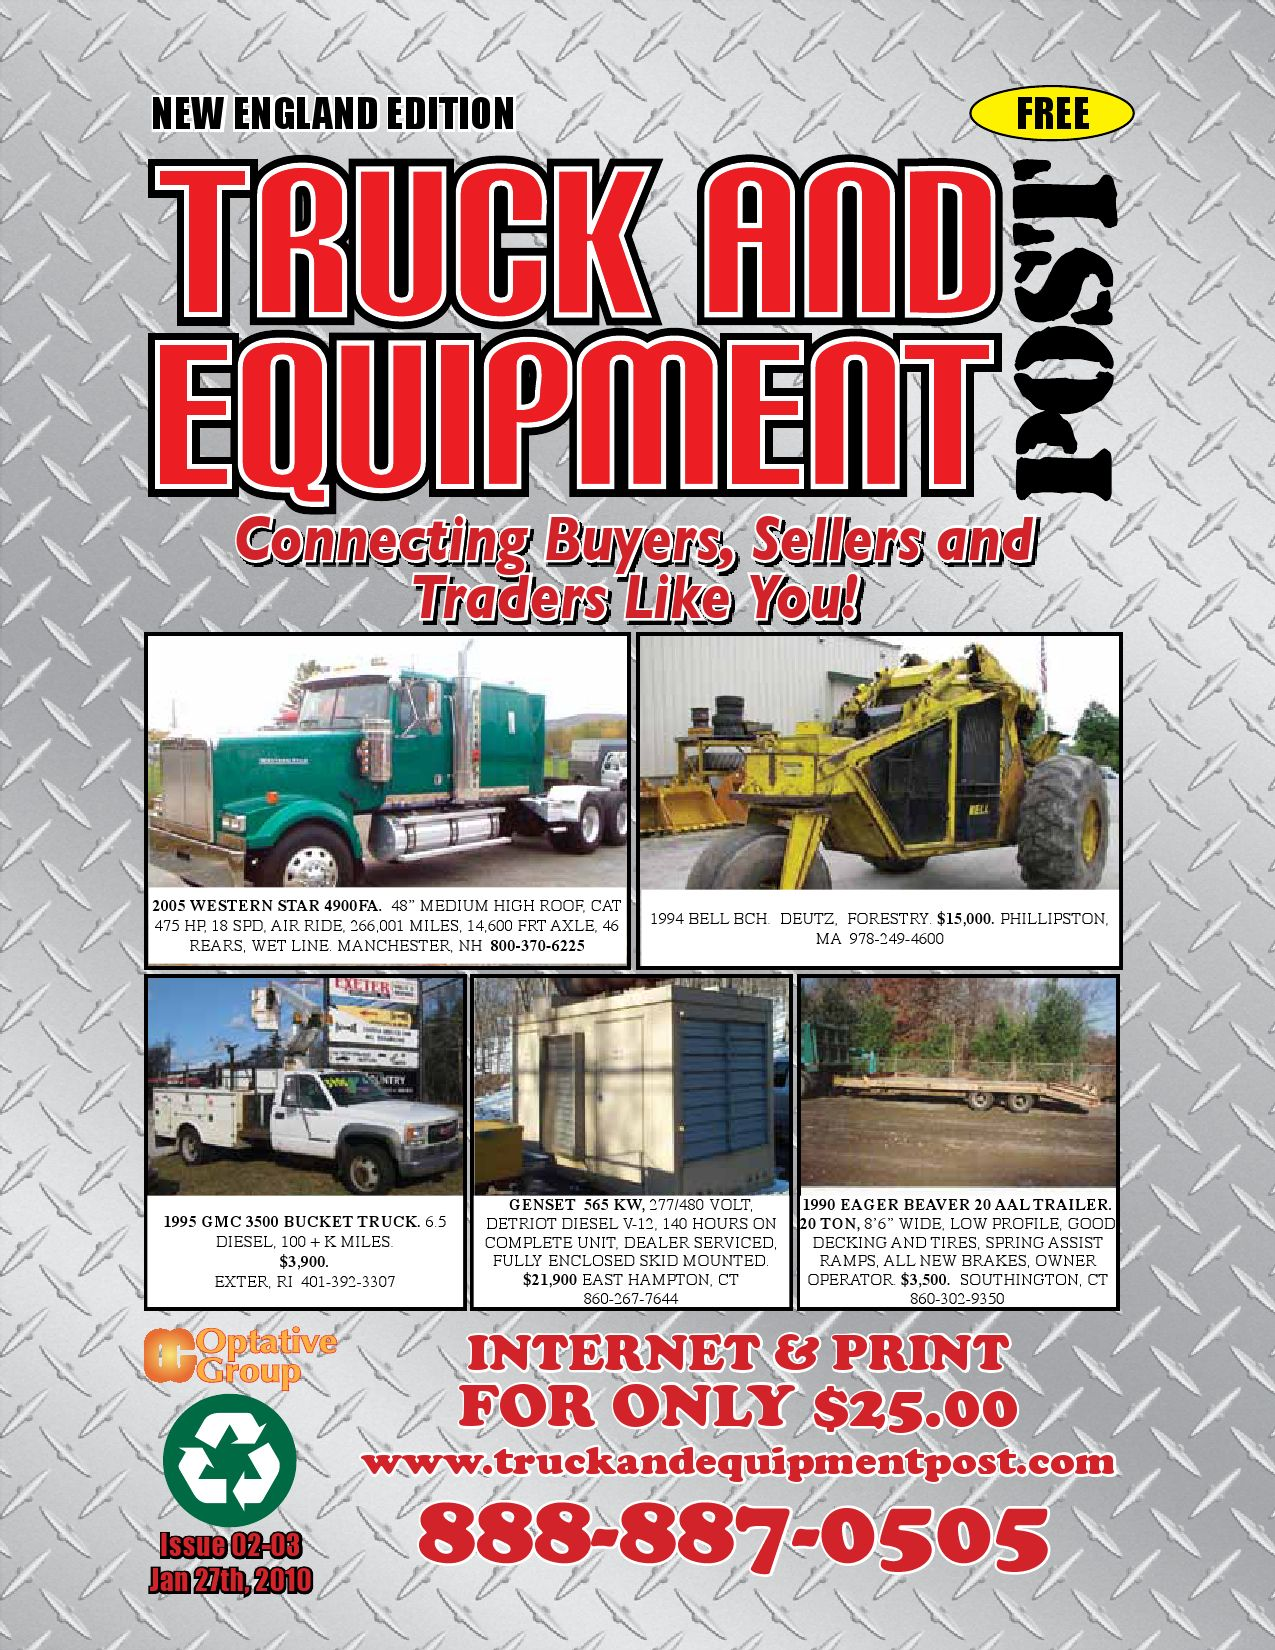 Truck And Equipment Post - Issue 02-03 2010 by 1ClickAway